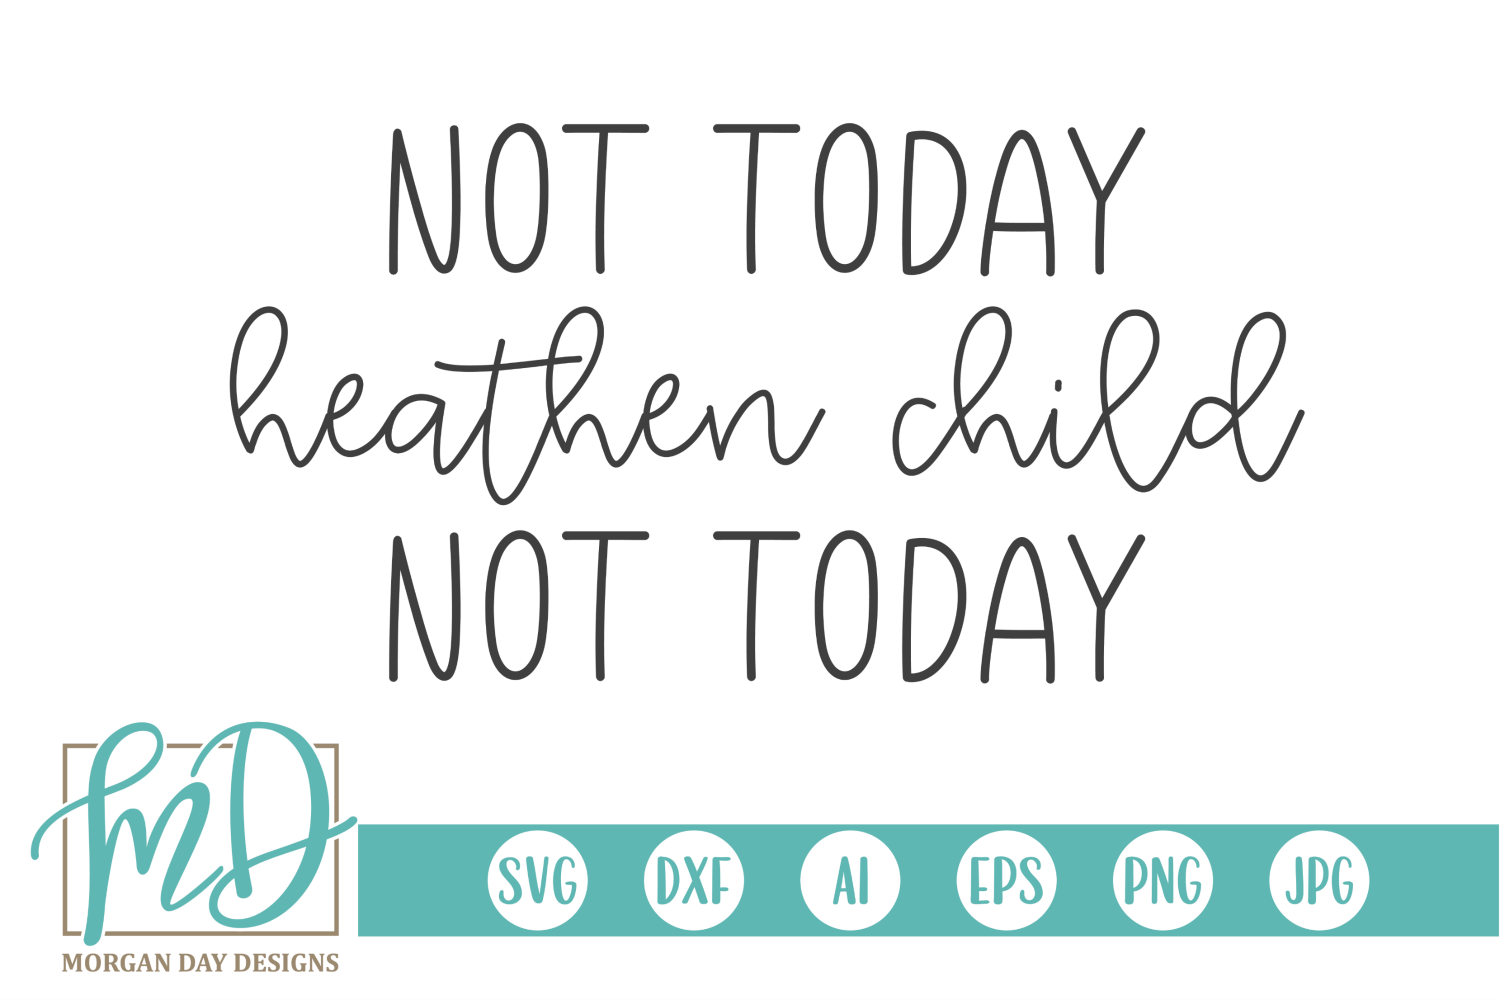 Not Today Heathen Child Not Today Svg By Morgan Day Designs